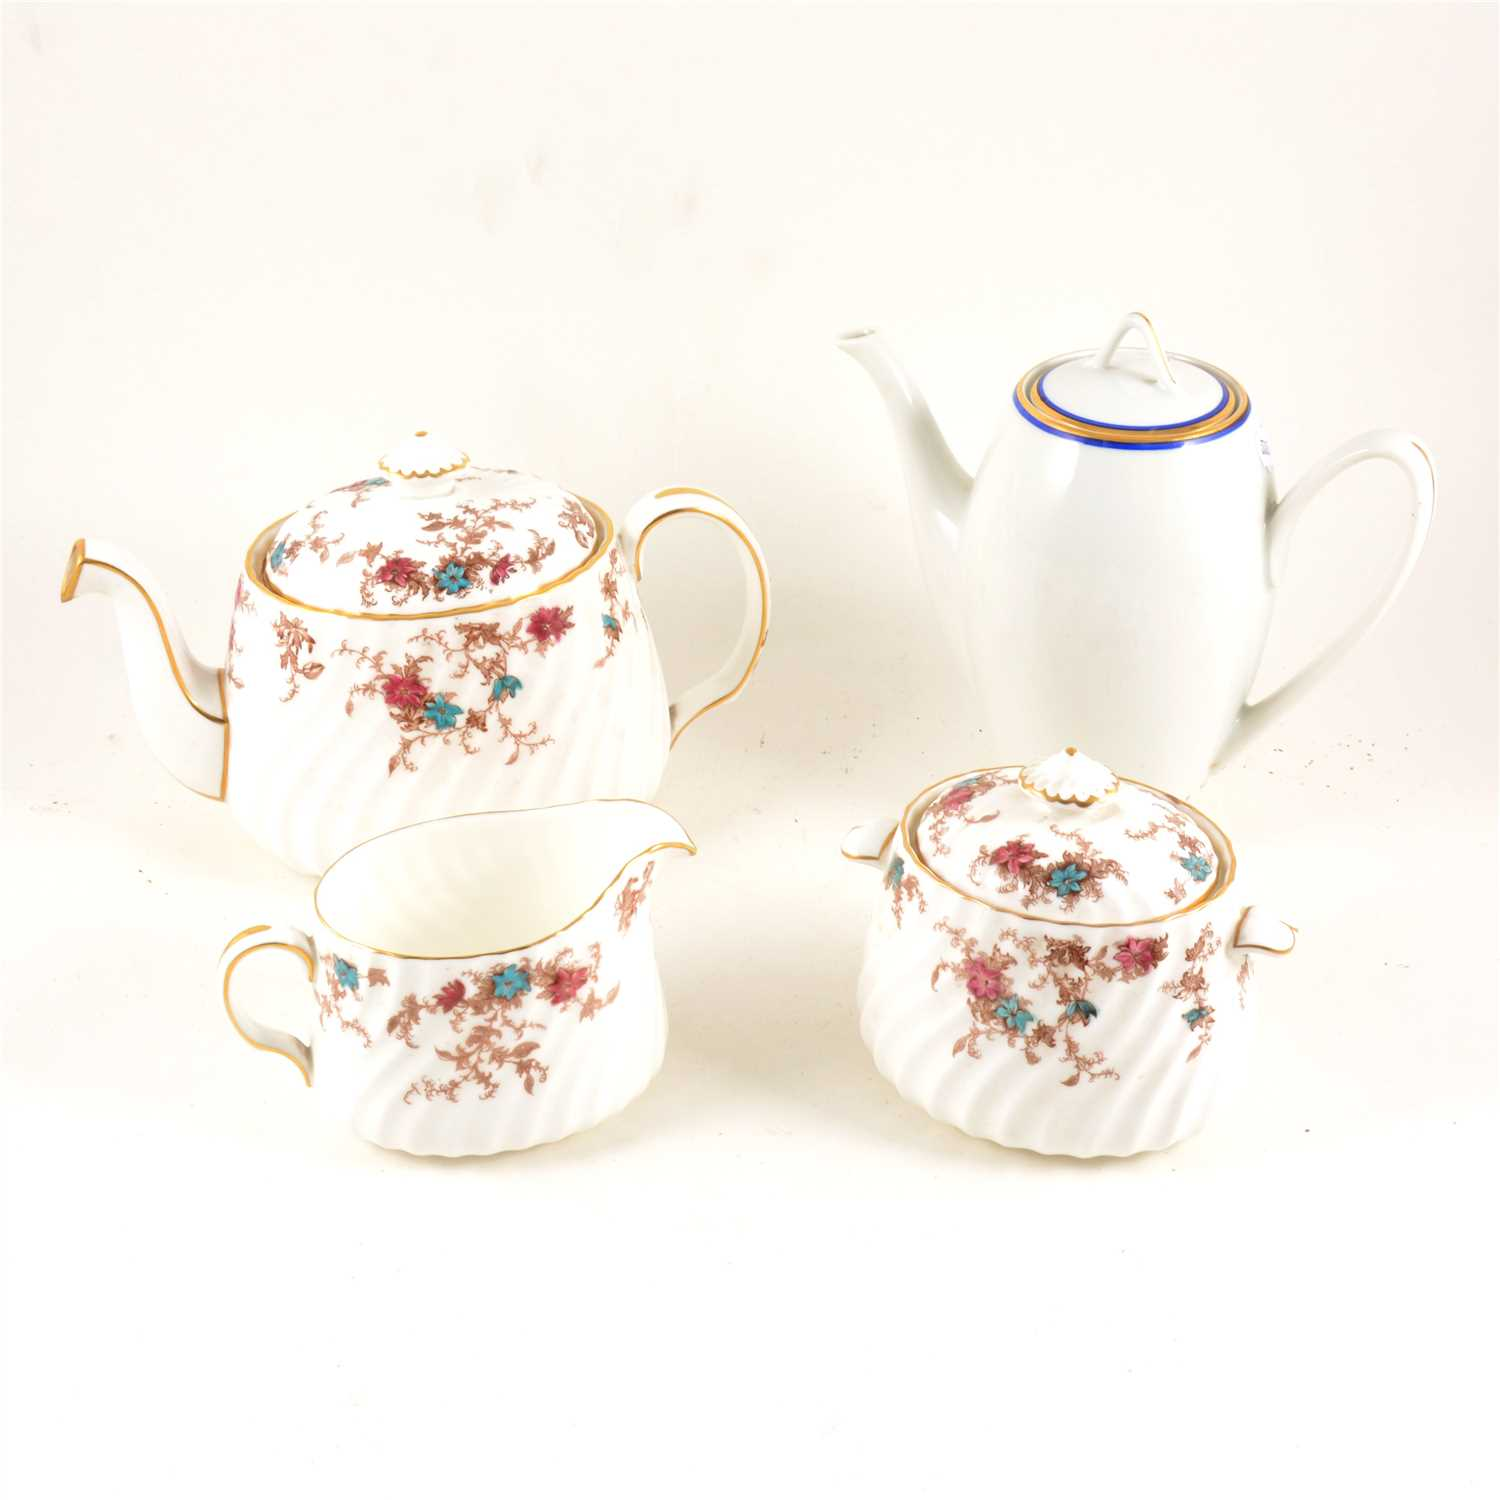 Lot 60-Minton bone china part teaset, Ancestral pattern, and a Carlsbad coffee set.